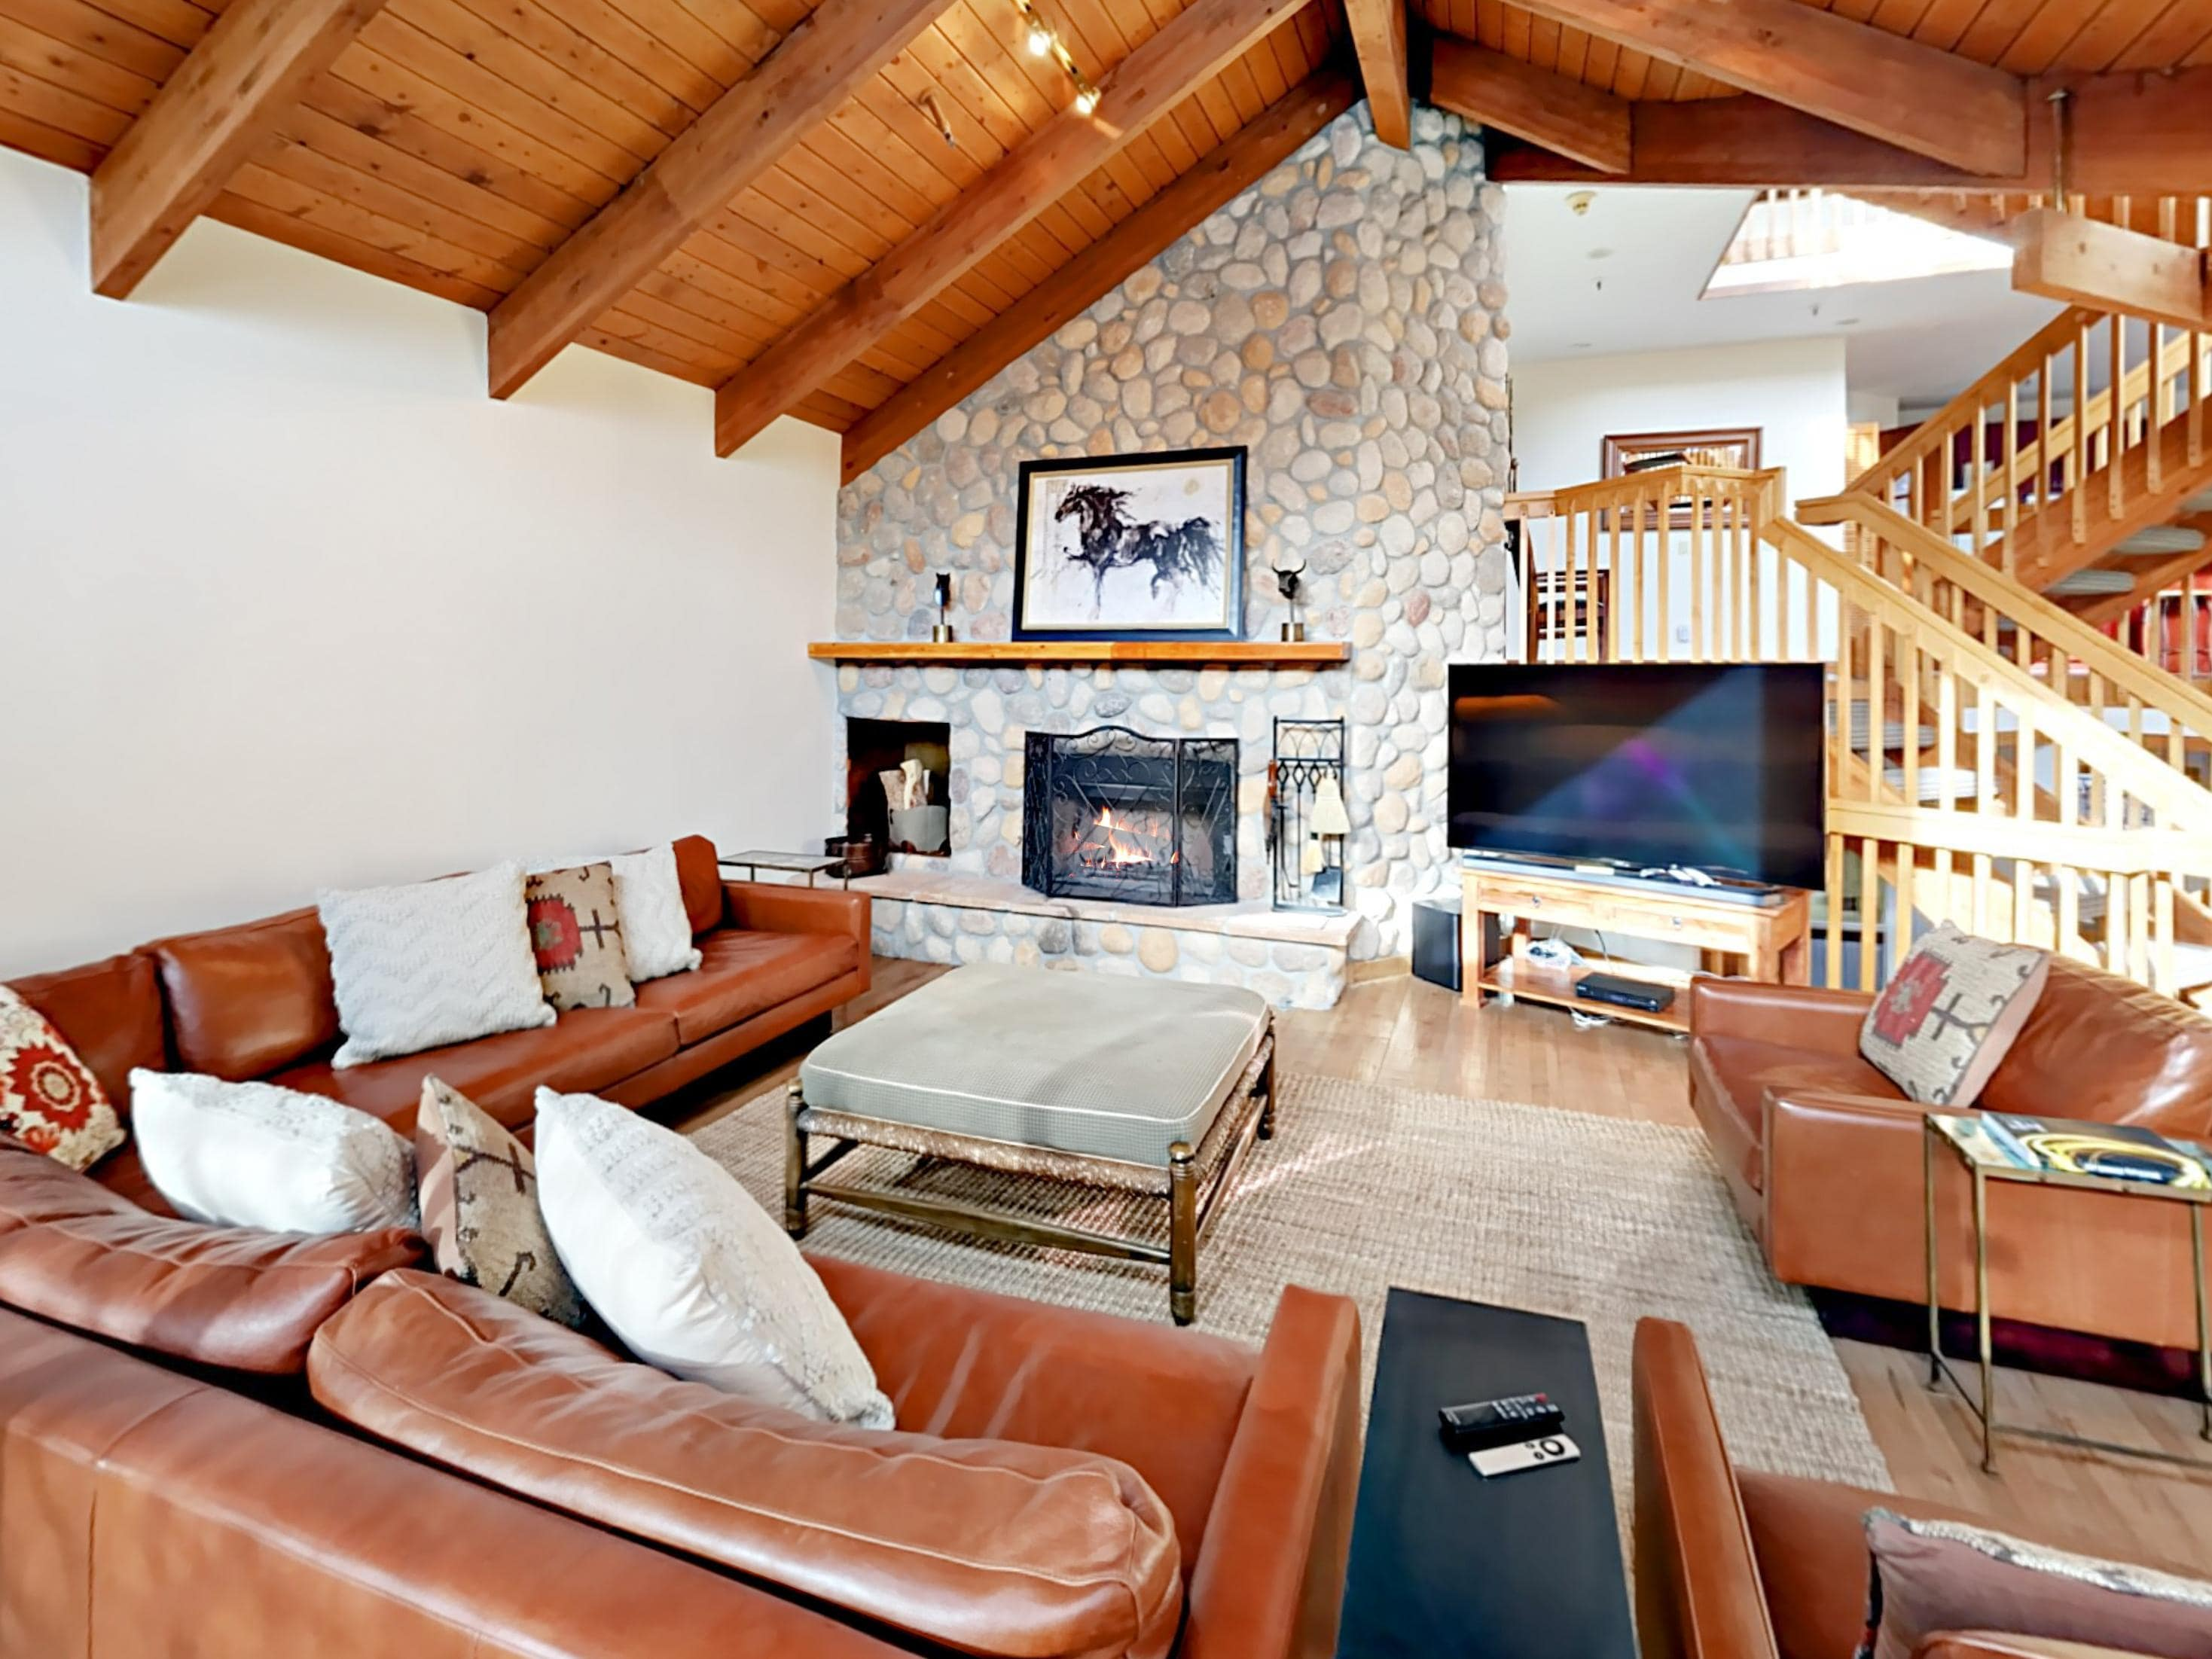 Welcome to your townhouse in Park City! A grand living room boasts vaulted wood ceilings and a stone wall feature with a wood burning fireplace.